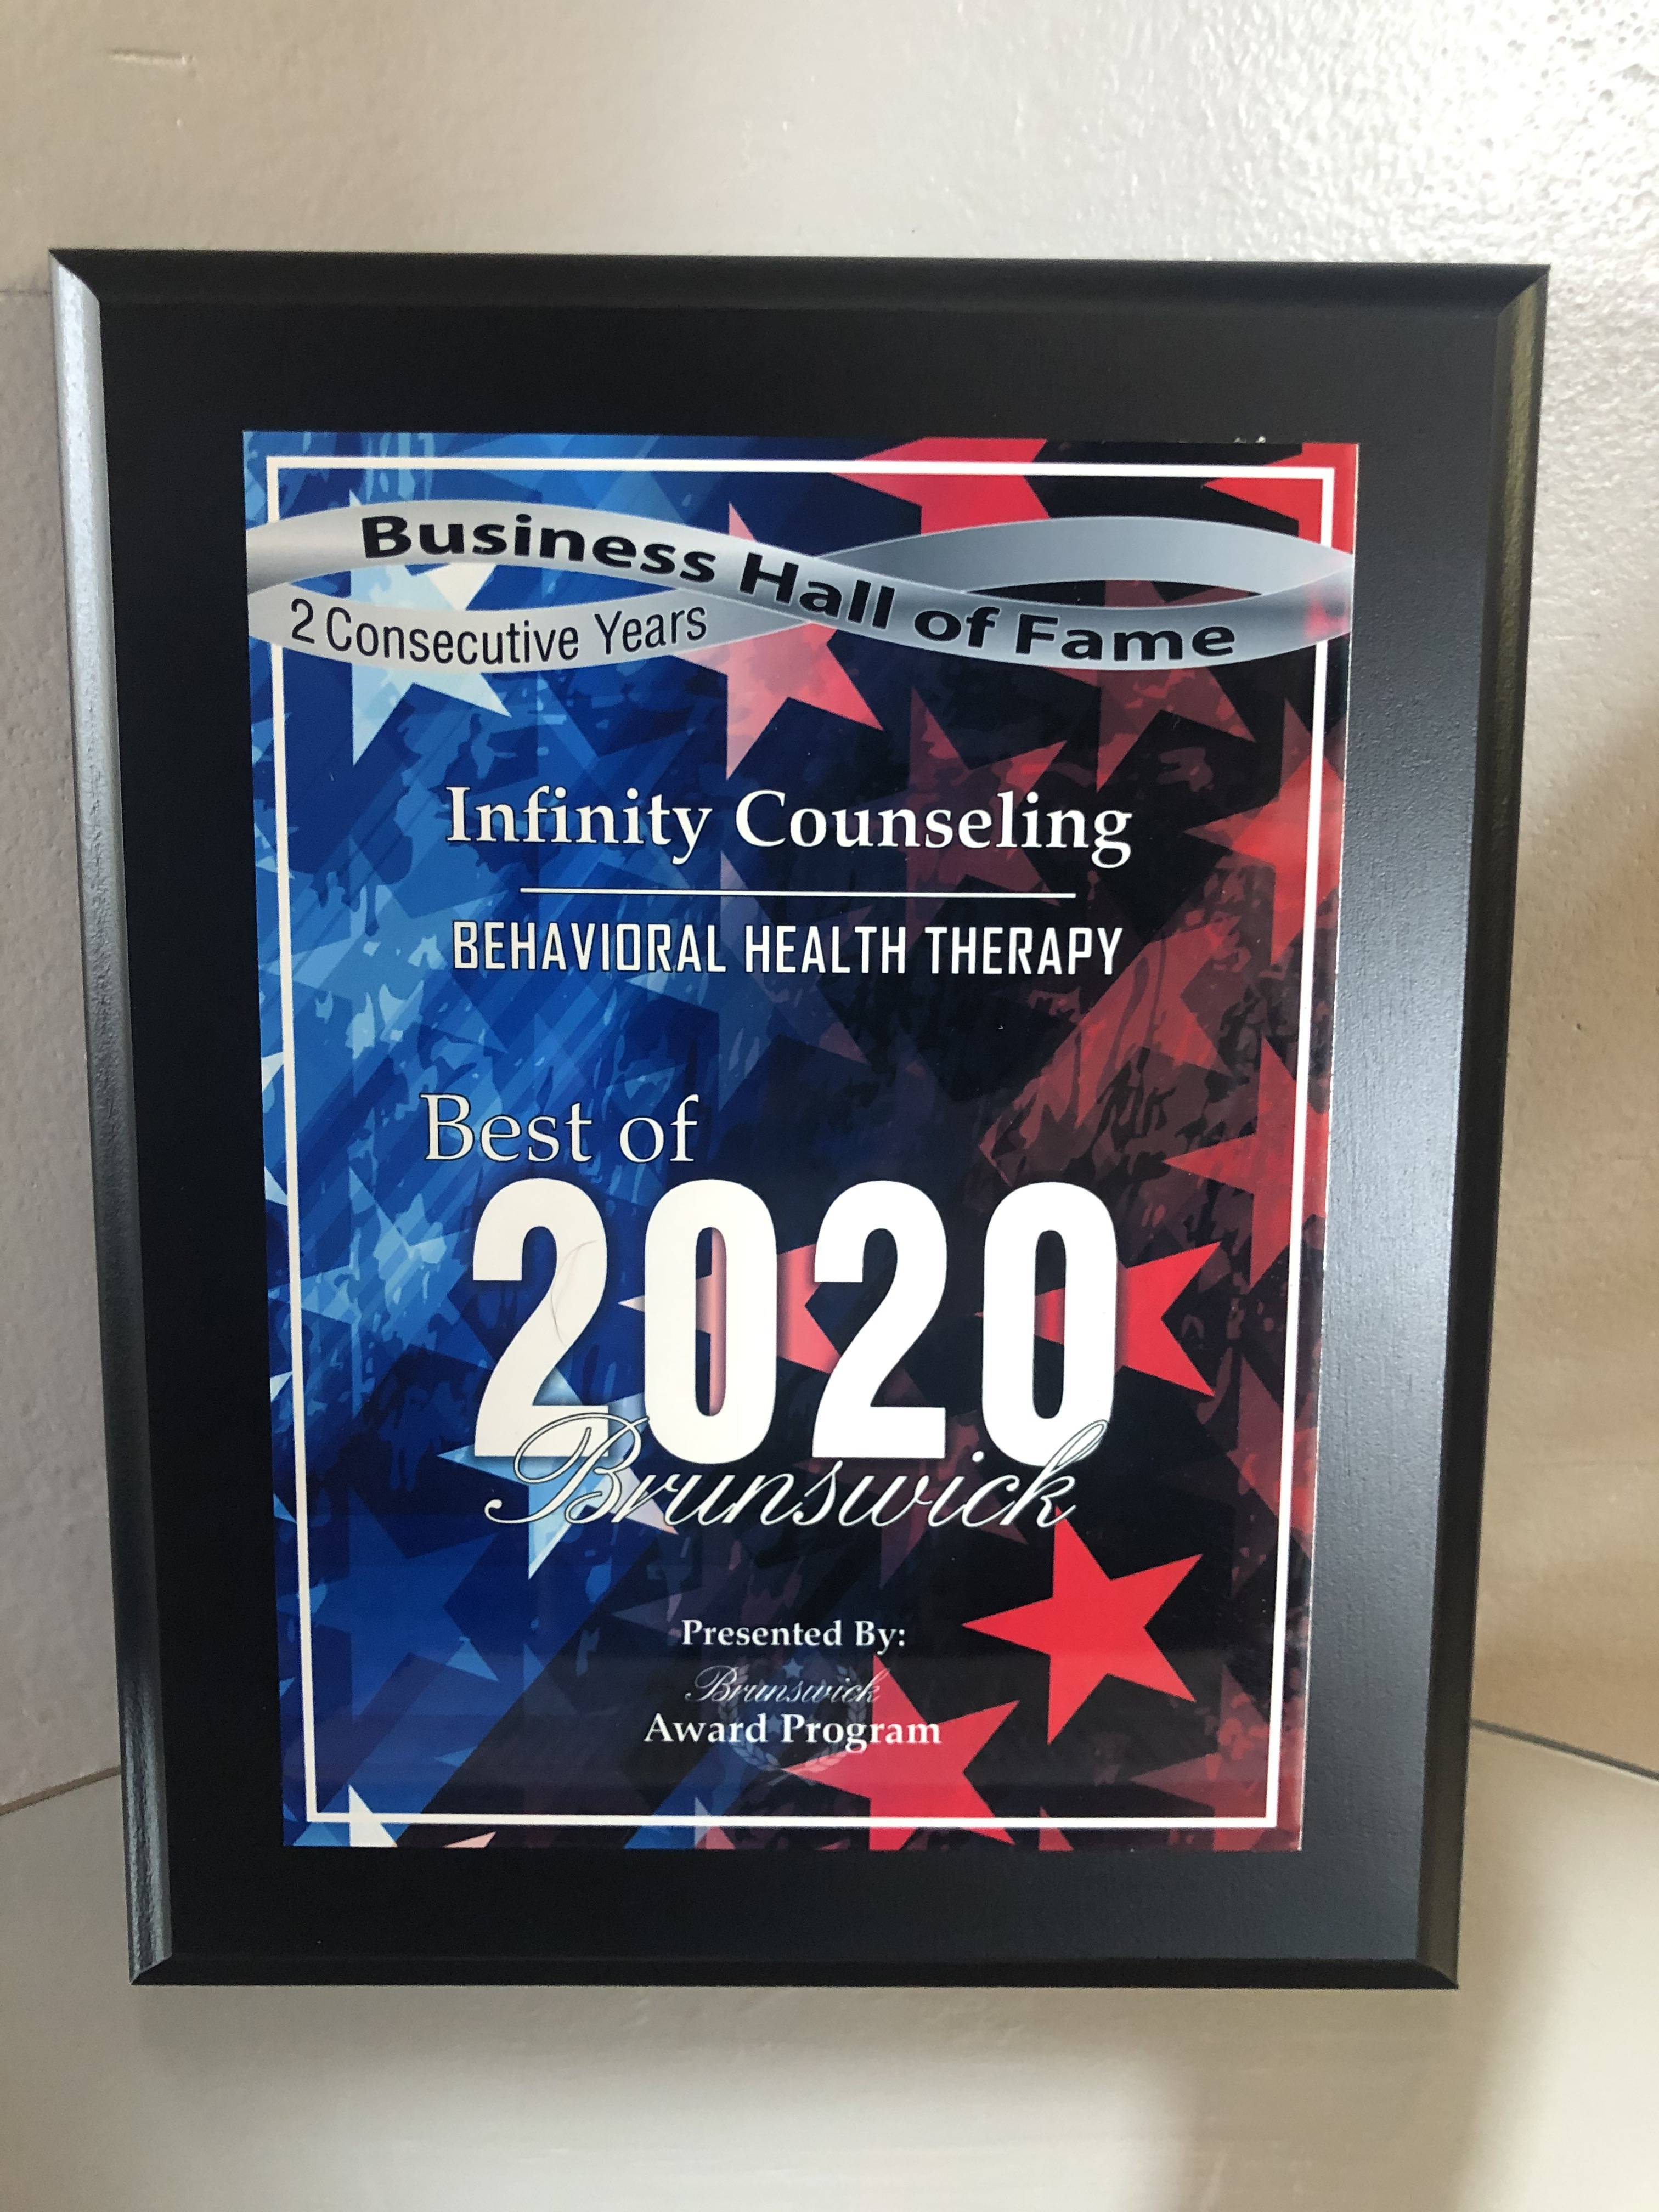 Voted Best Behavioral Health Therapy for two consecutive years!